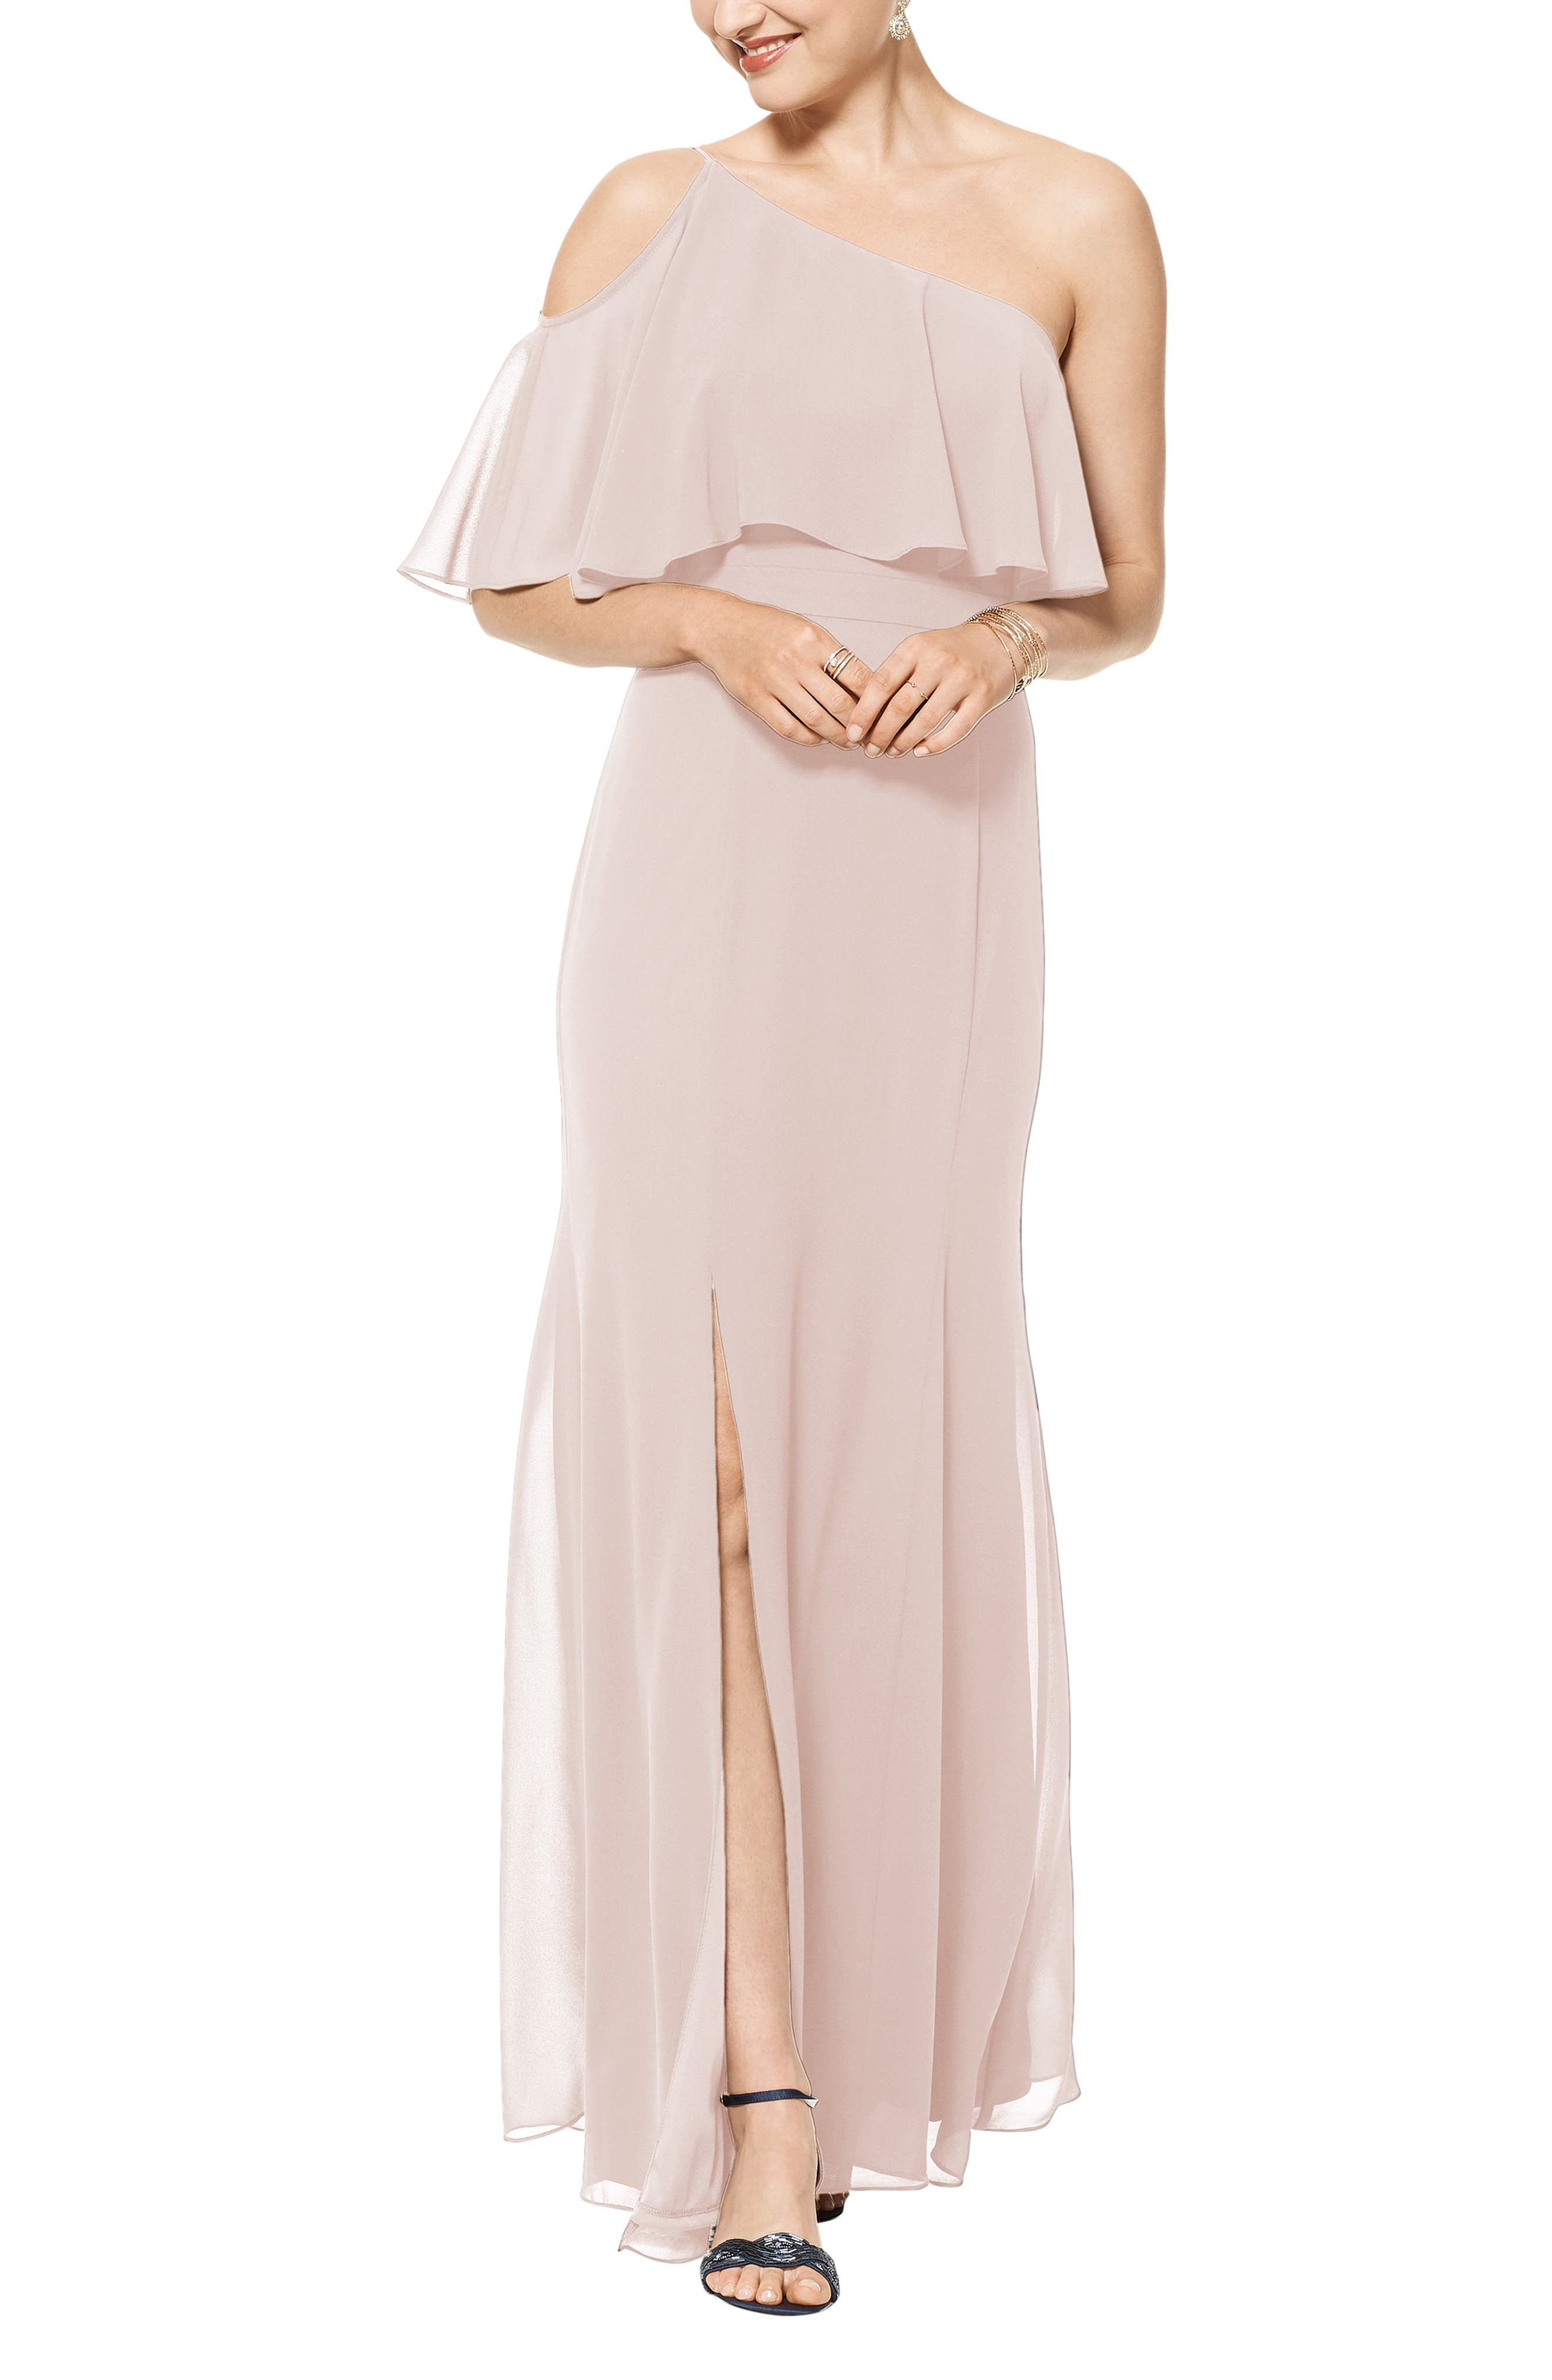 Boast a Grecian-inspired silhouette in this sweeping chiffon gown that bares one shoulder, beautifully skims your curve then flares gracefully to the floor. Style Name:#levkoff One-Shoulder Chiffon A-Line Gown. Style Number: 6009385. Available in stores.